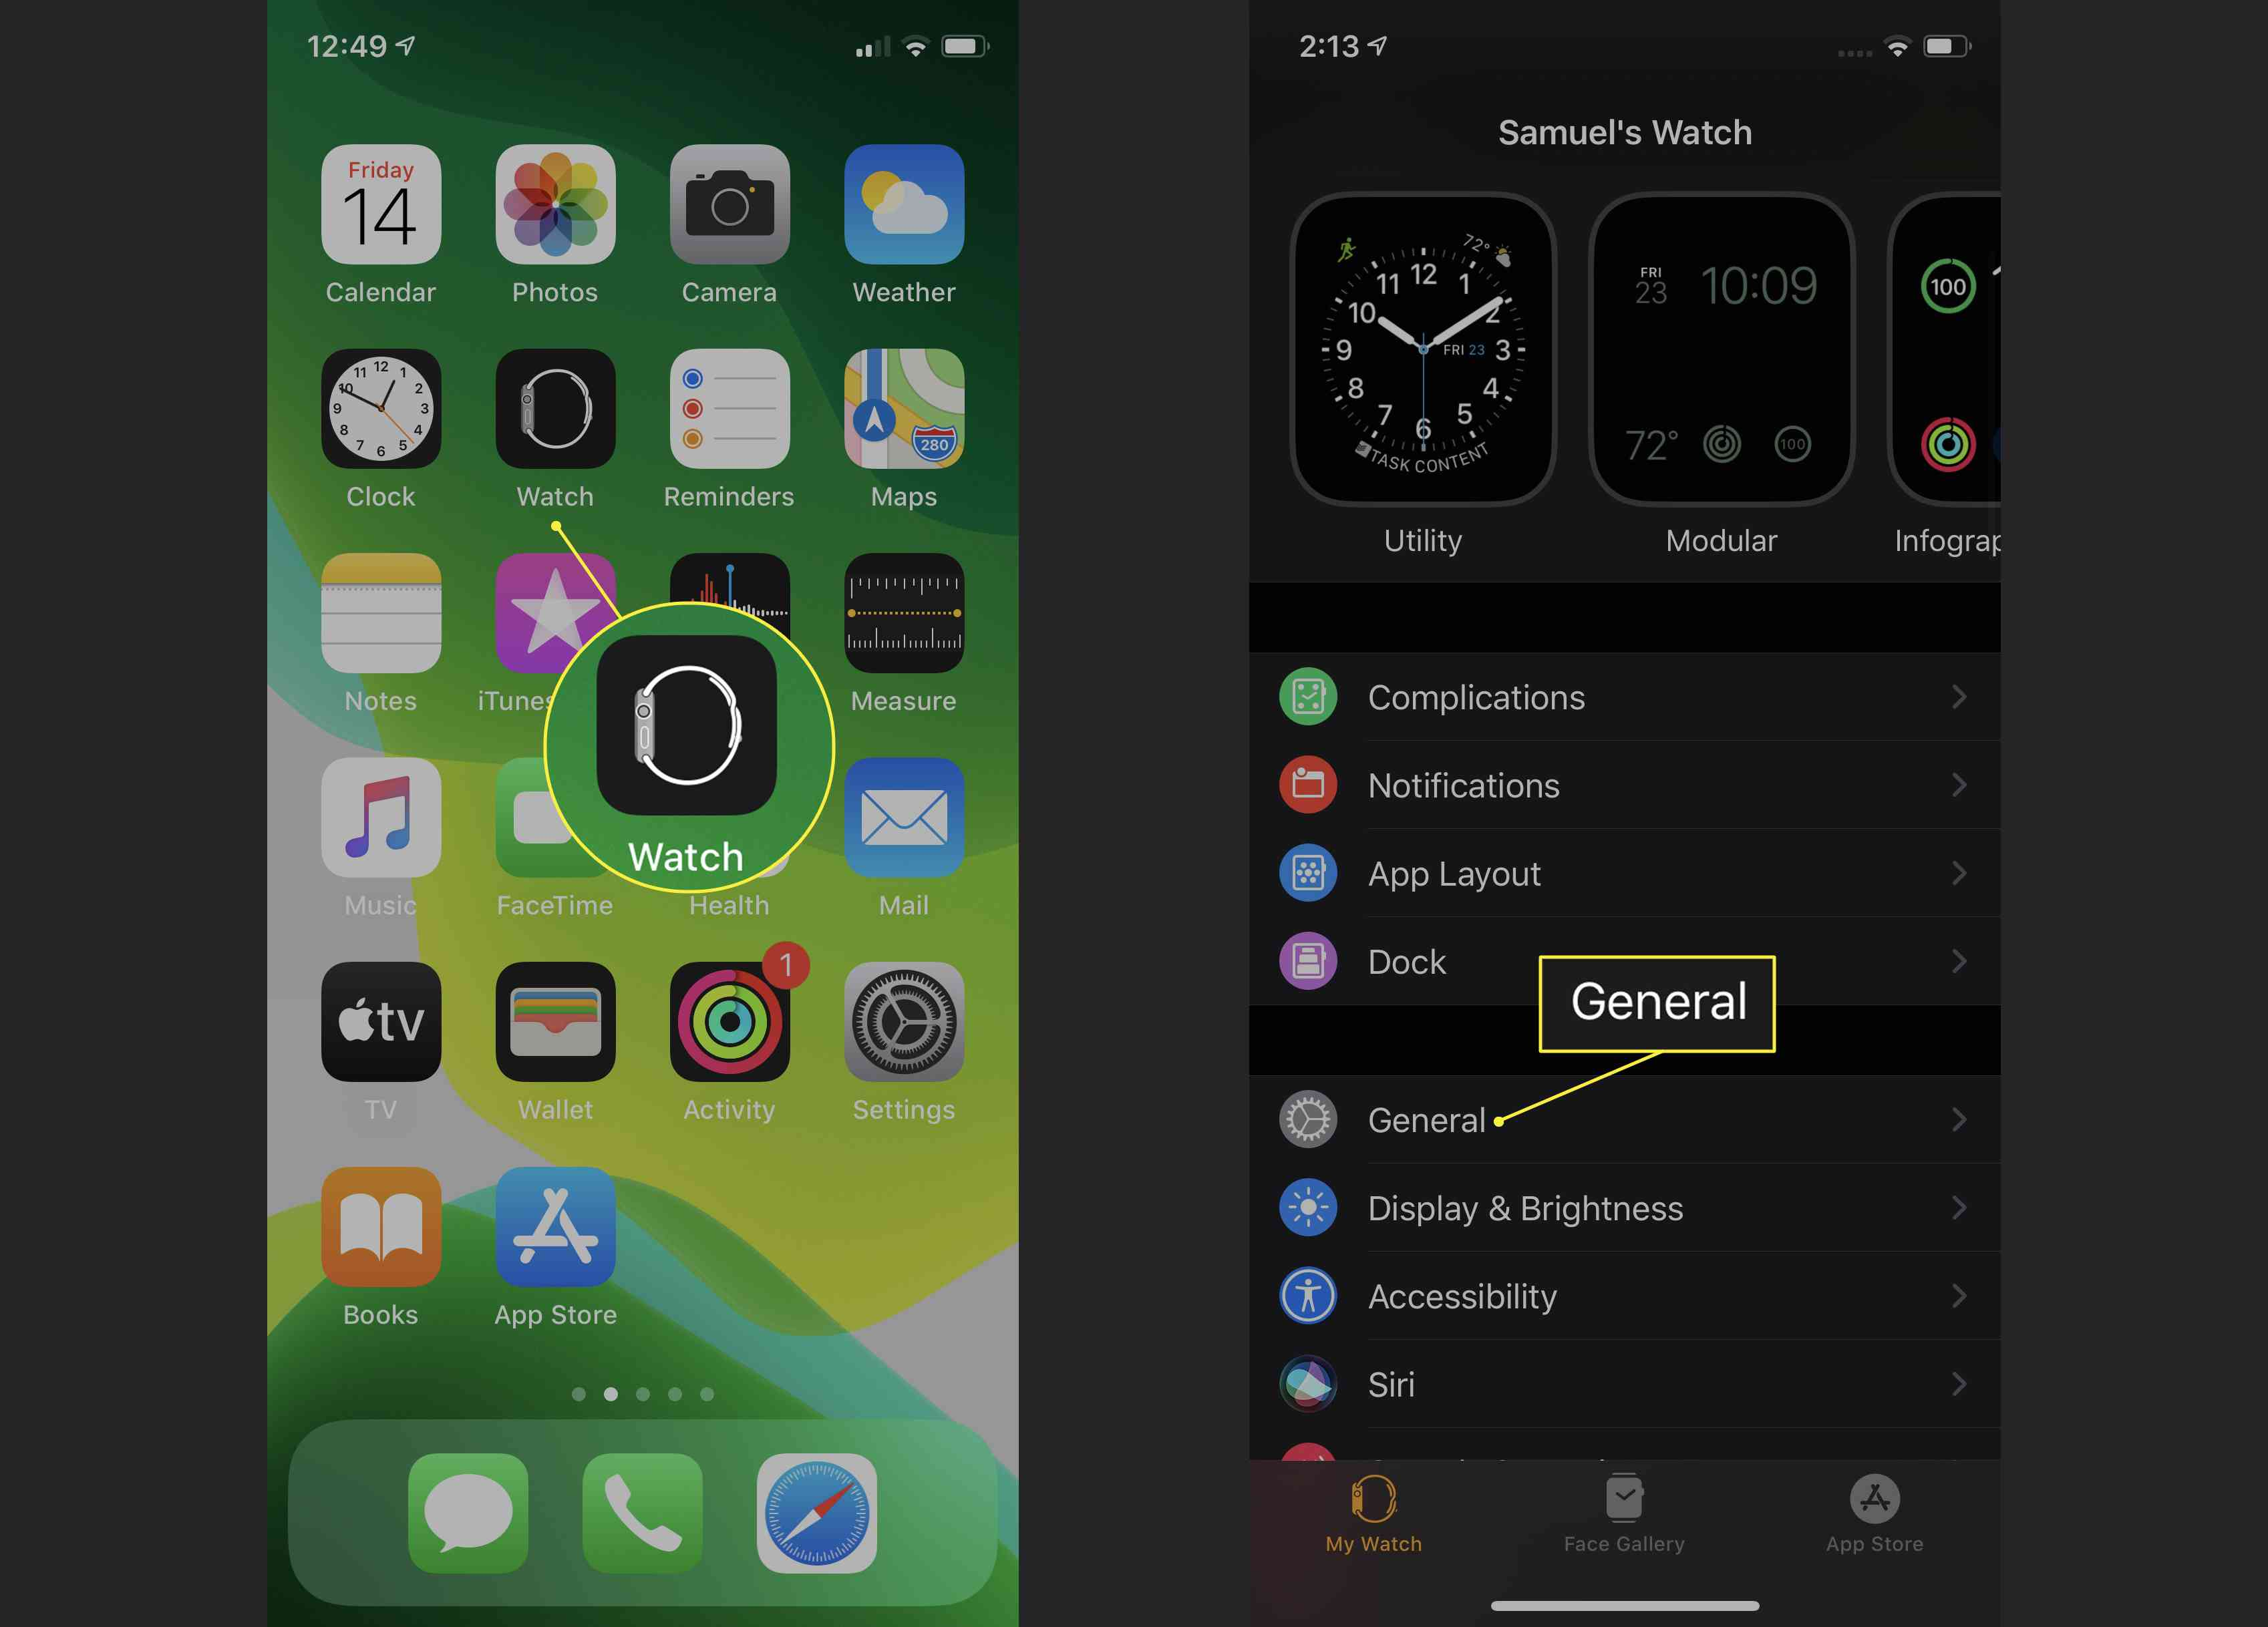 Apple Watch app with General highlighted